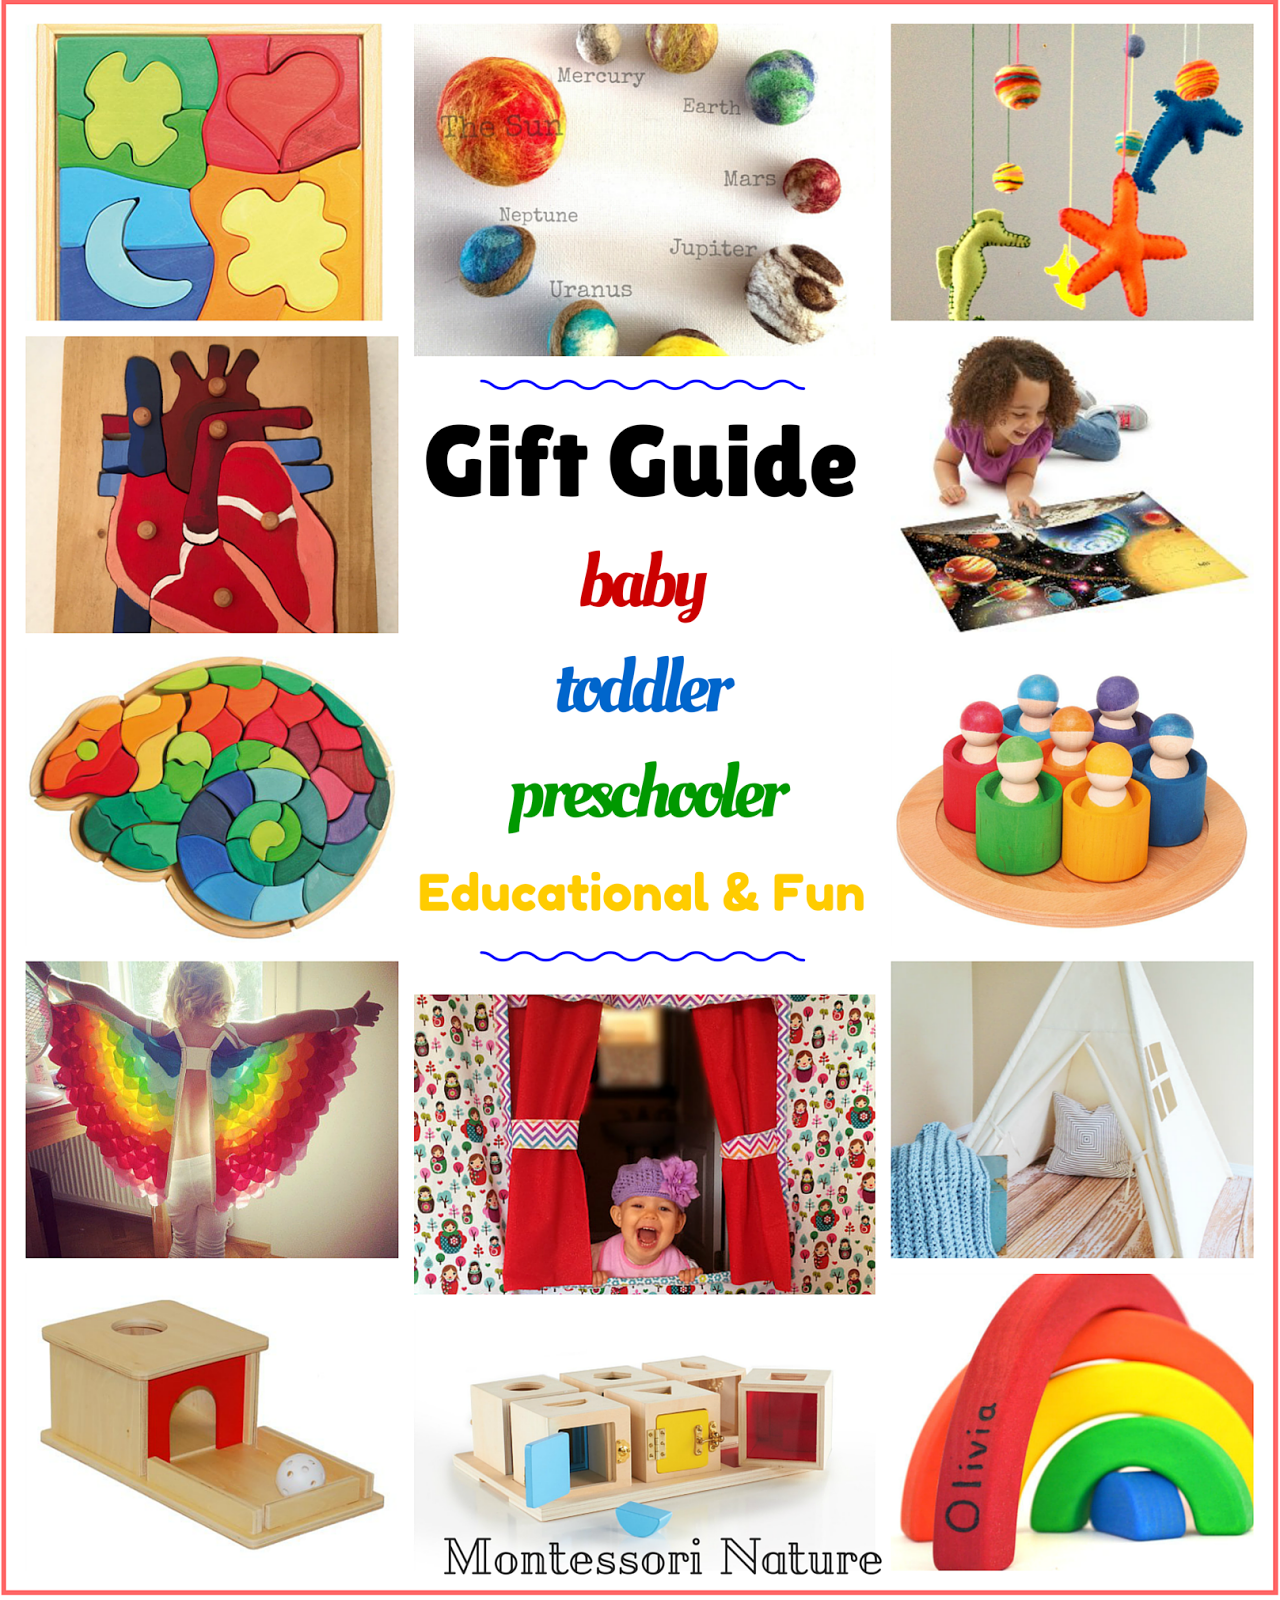 Unique gifts for one year olds